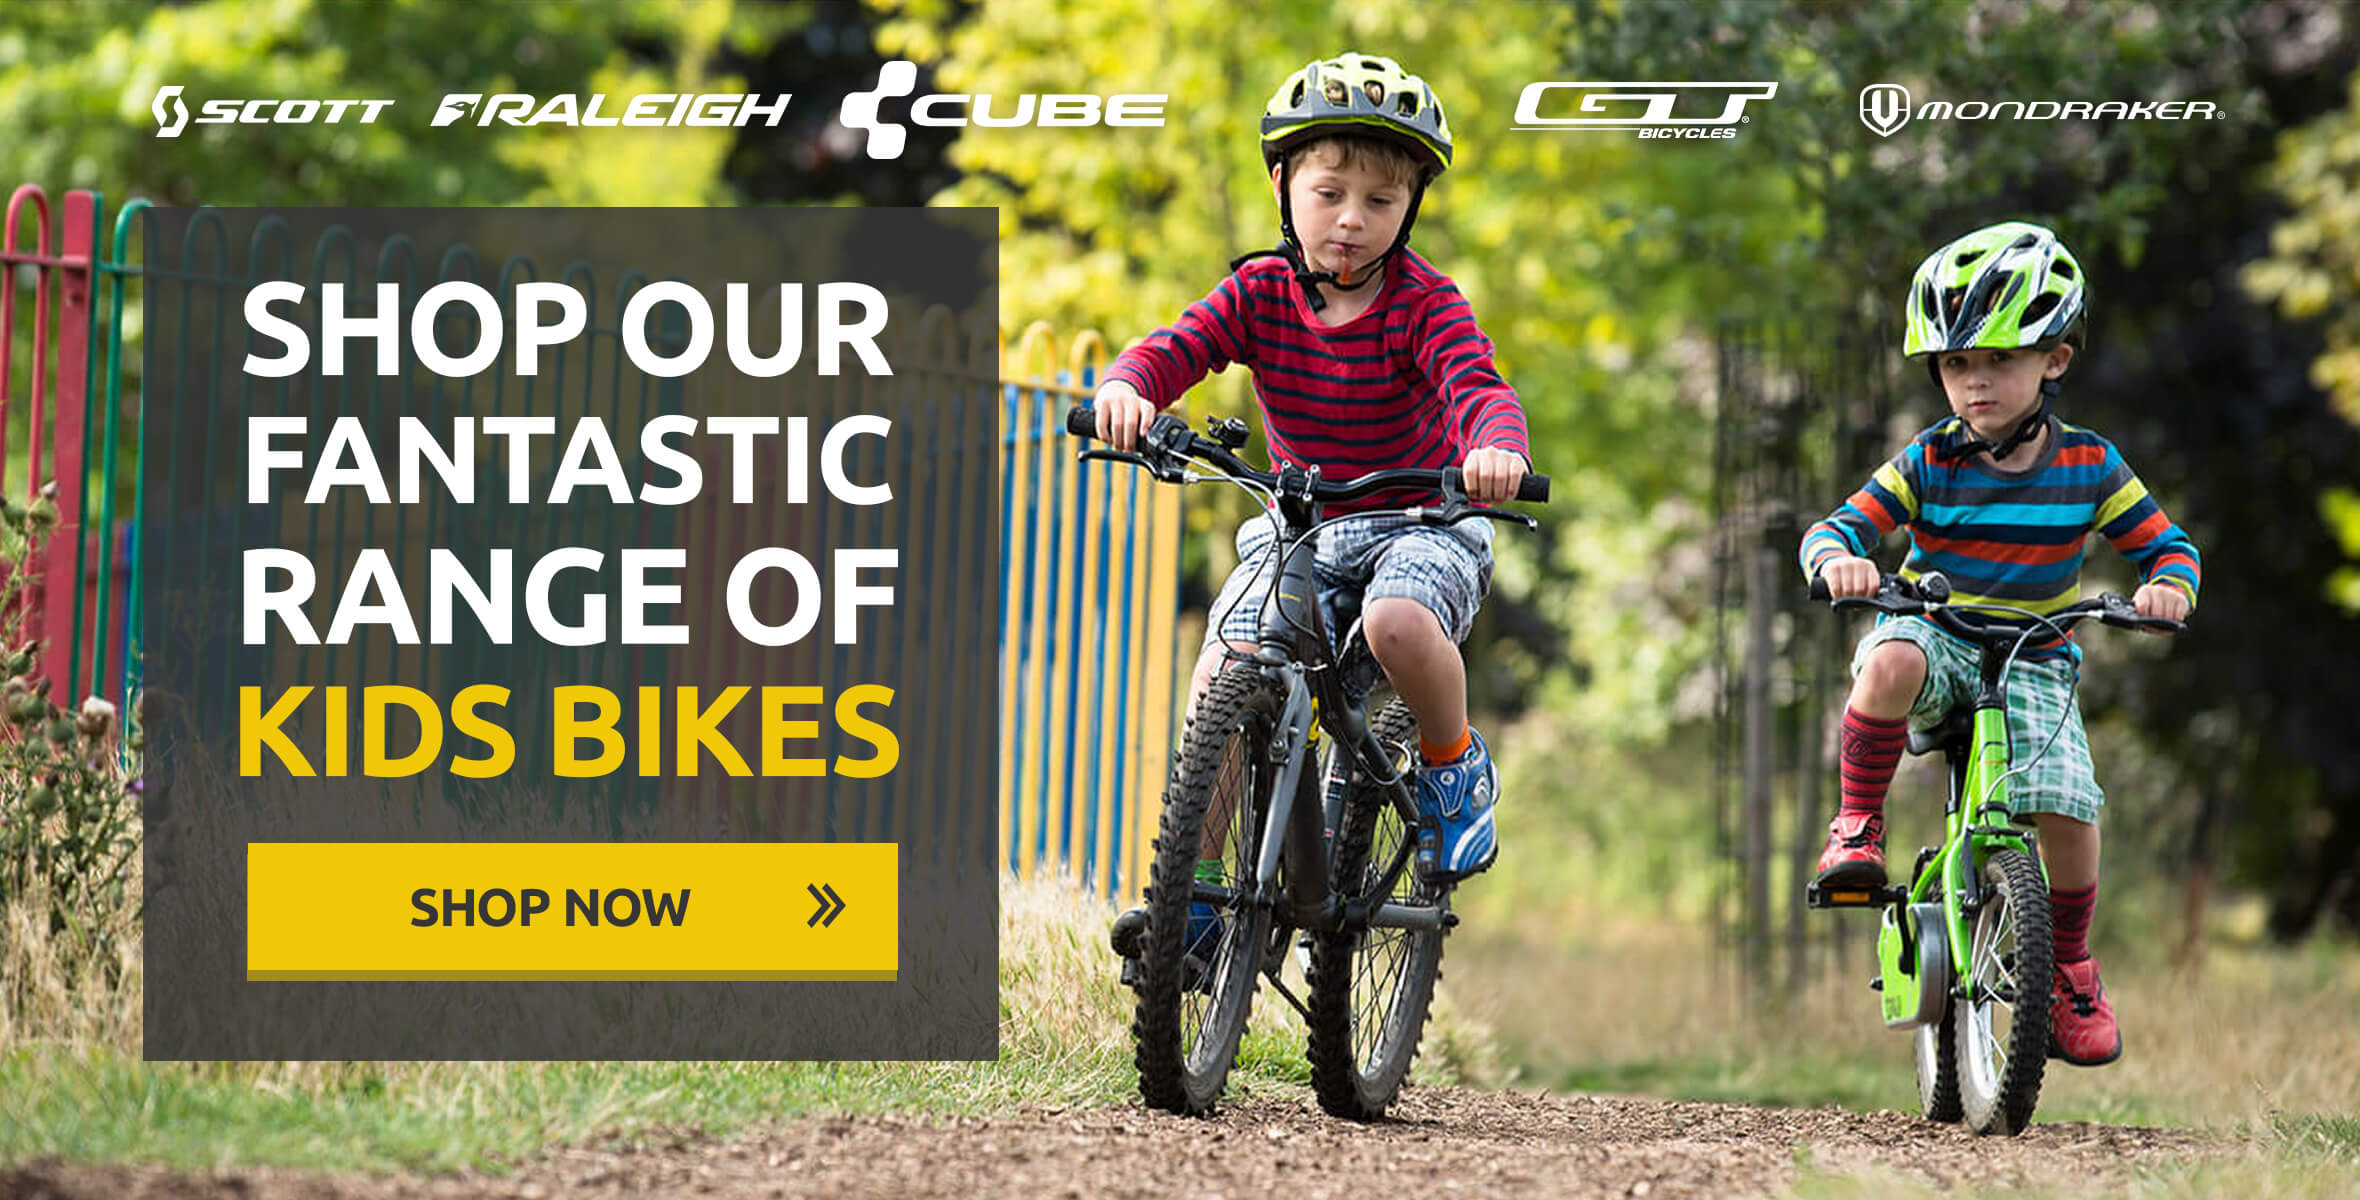 Shop Our Fantastic Range of Kids Bikes